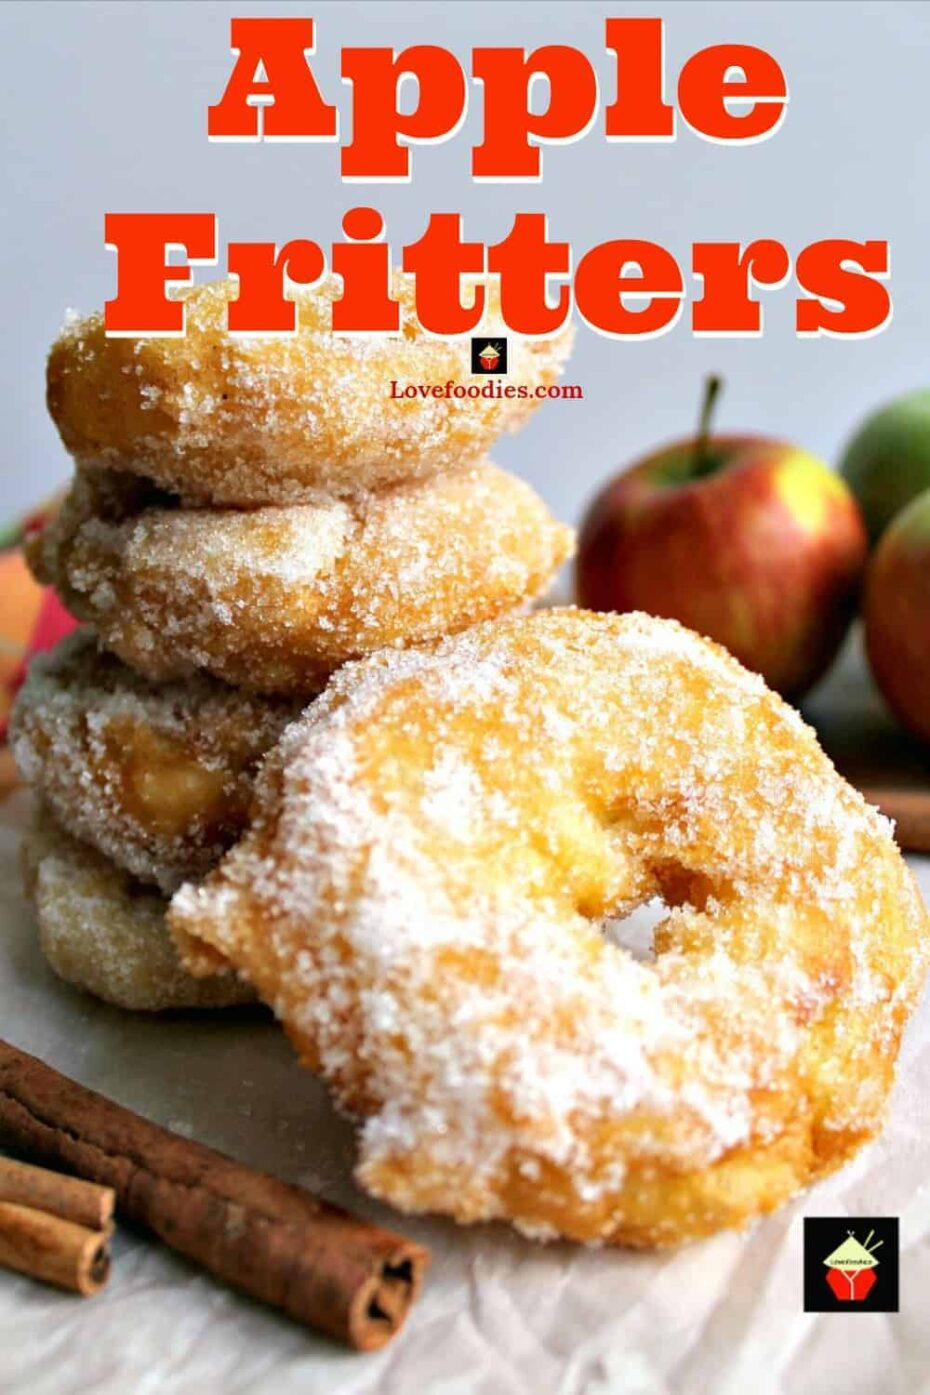 Apple Fritters. Delicious apple rings in a crispy light batter, coated in cinnamon sugar. Serve warm with a drizzle of syrup or ice cream. A perfect, quick & easy dessert